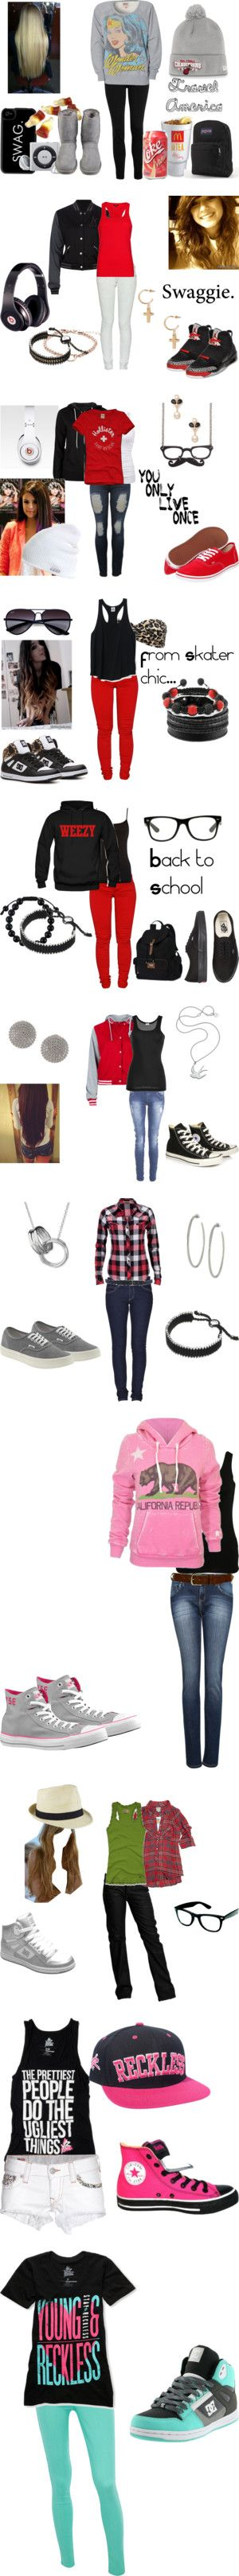 """""""Swagged Out(:"""" by kaylee-kimberlin on Polyvore"""